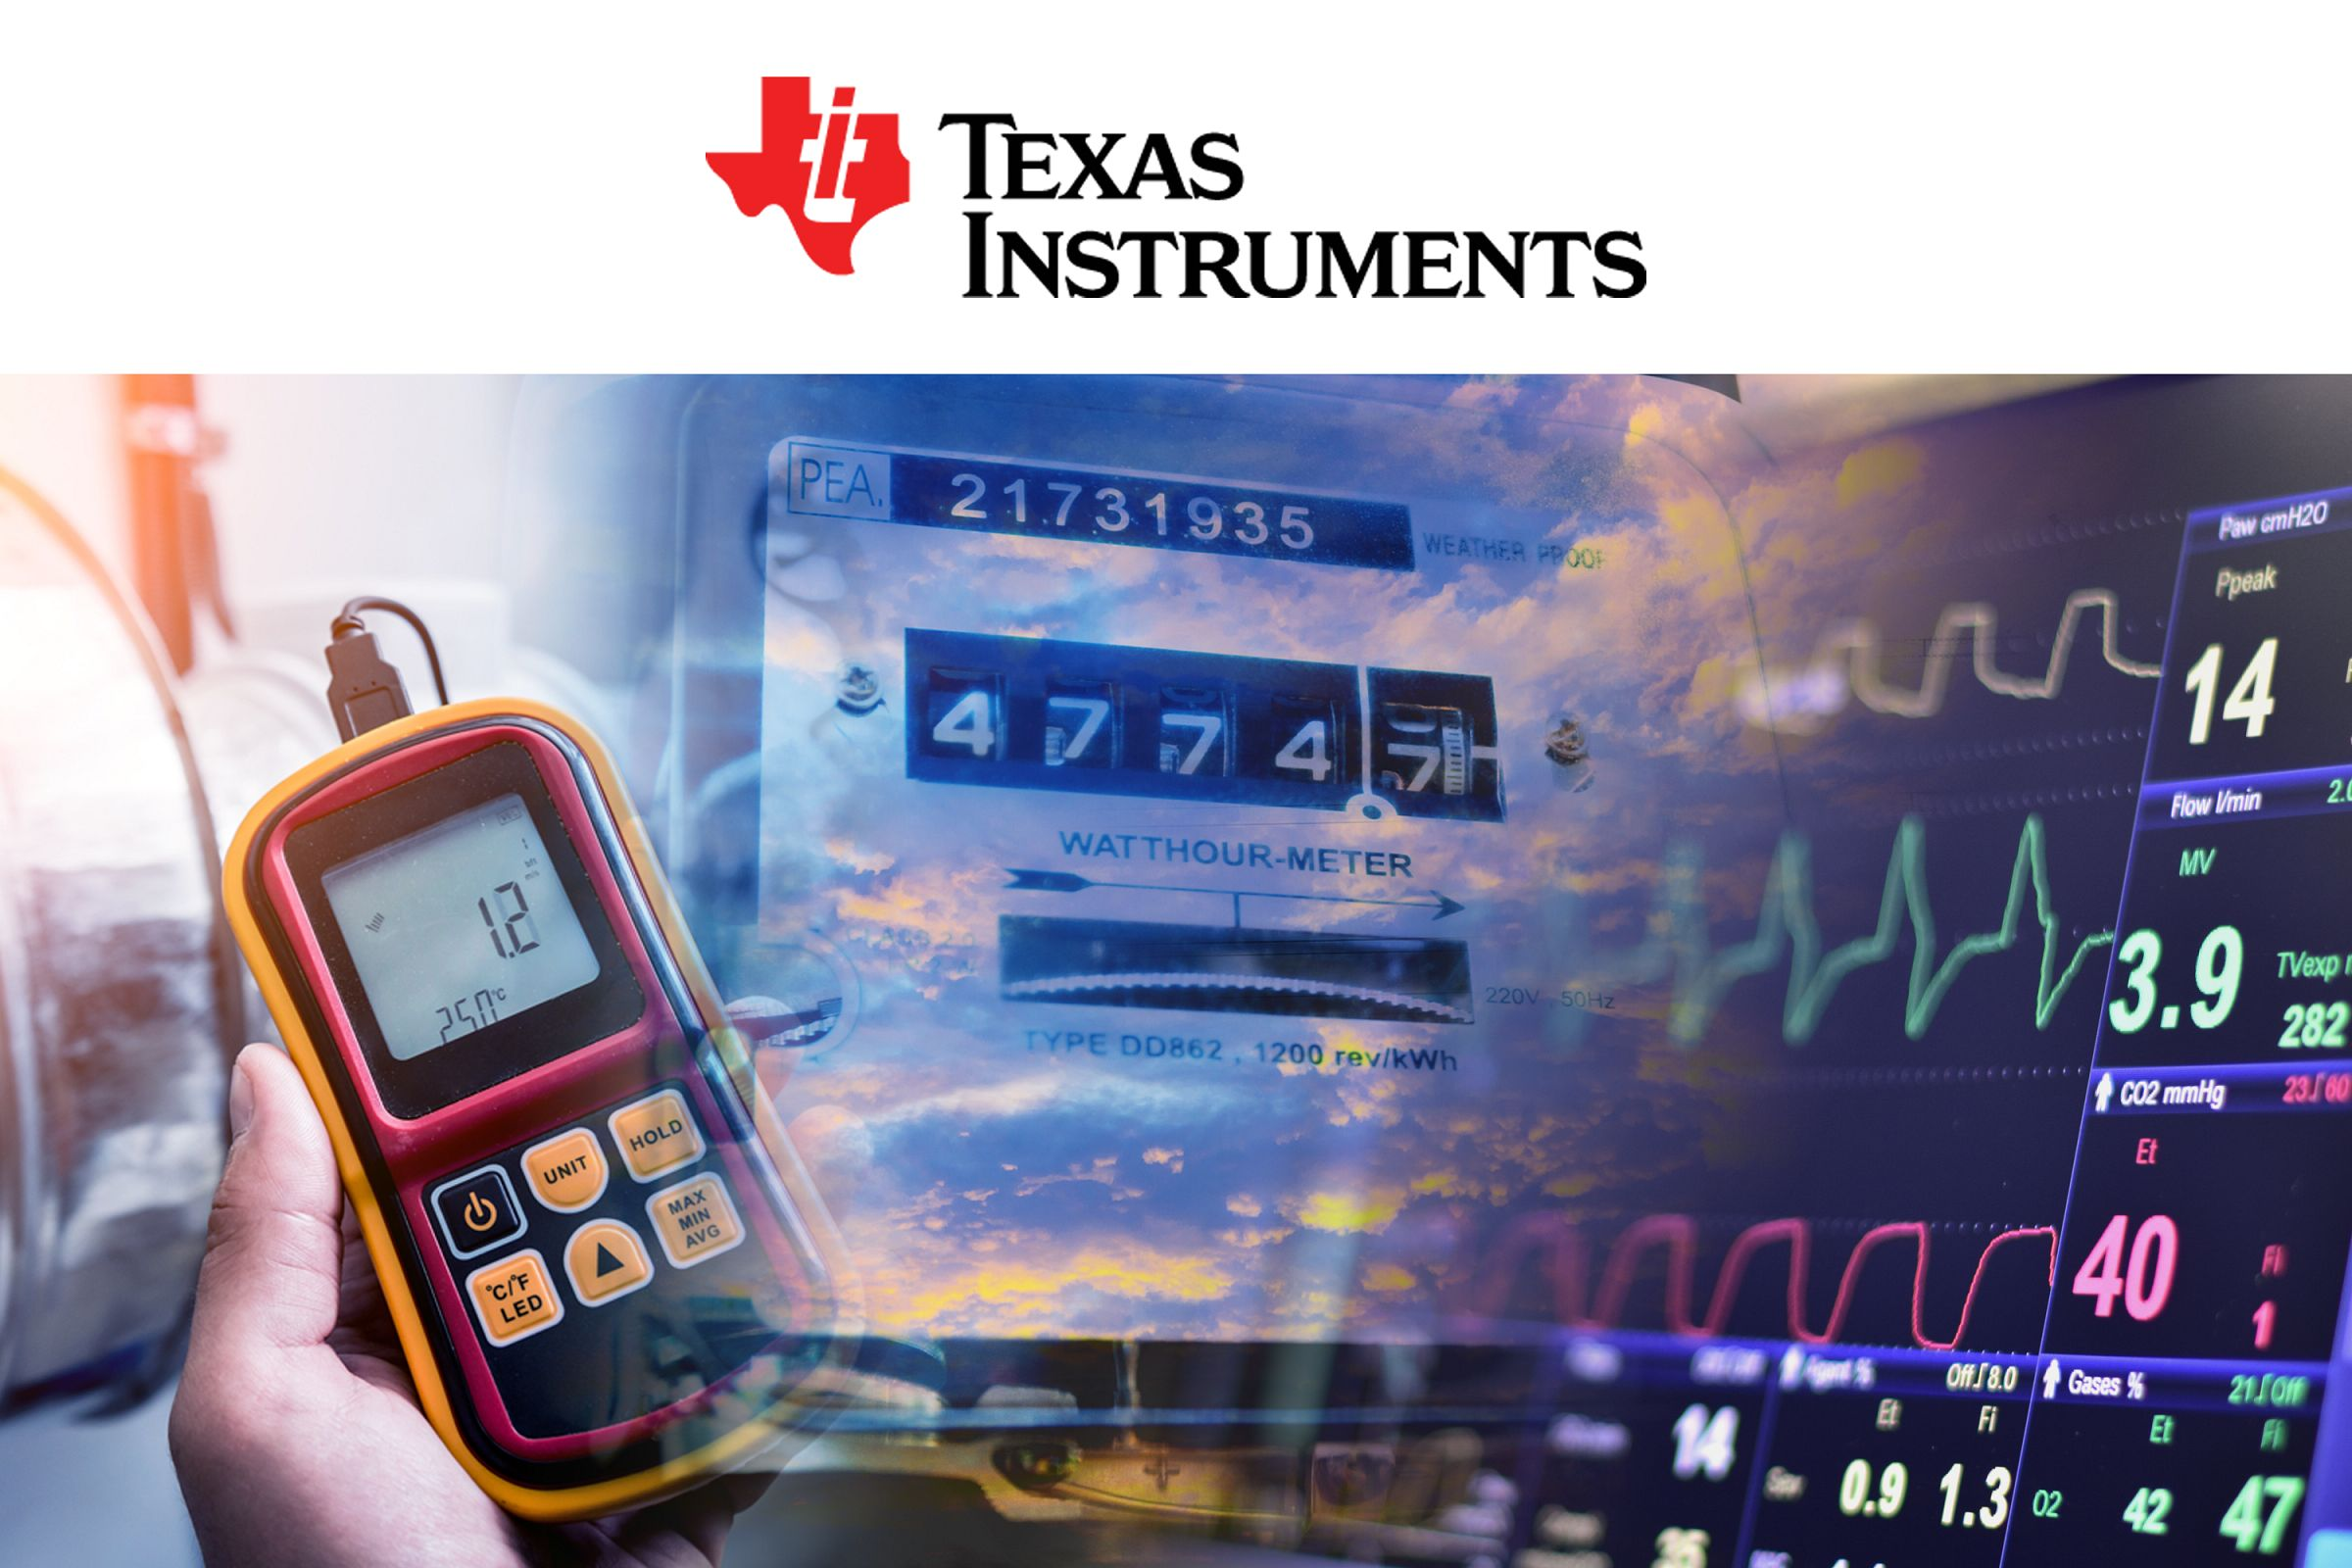 Authorized Partner of Texas Instruments Product